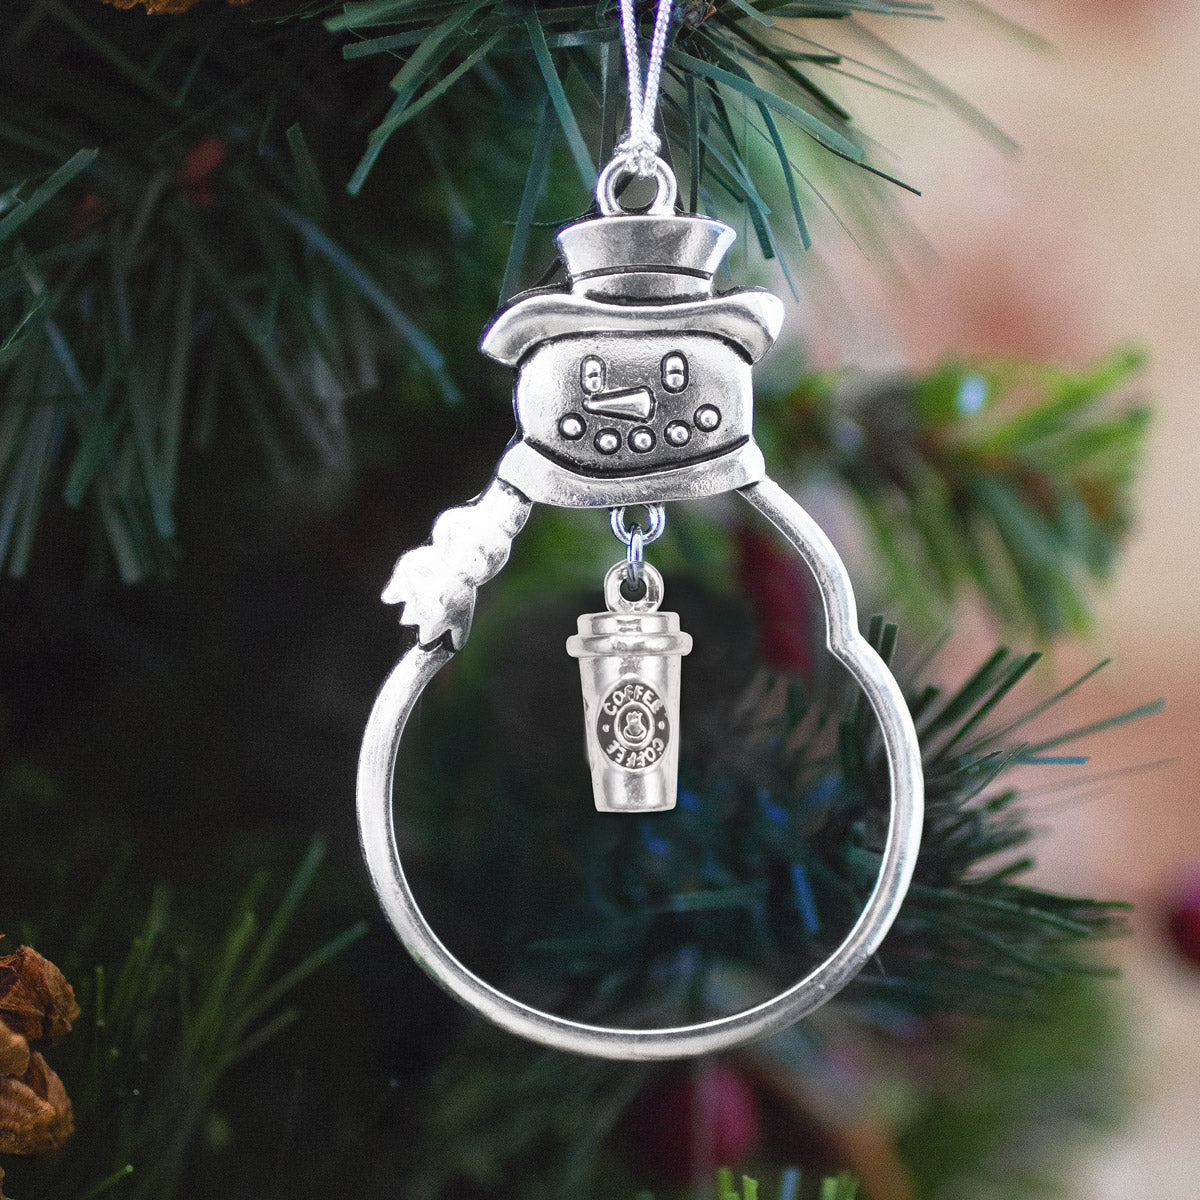 Coffee Travel Mug Charm Christmas / Holiday Ornament